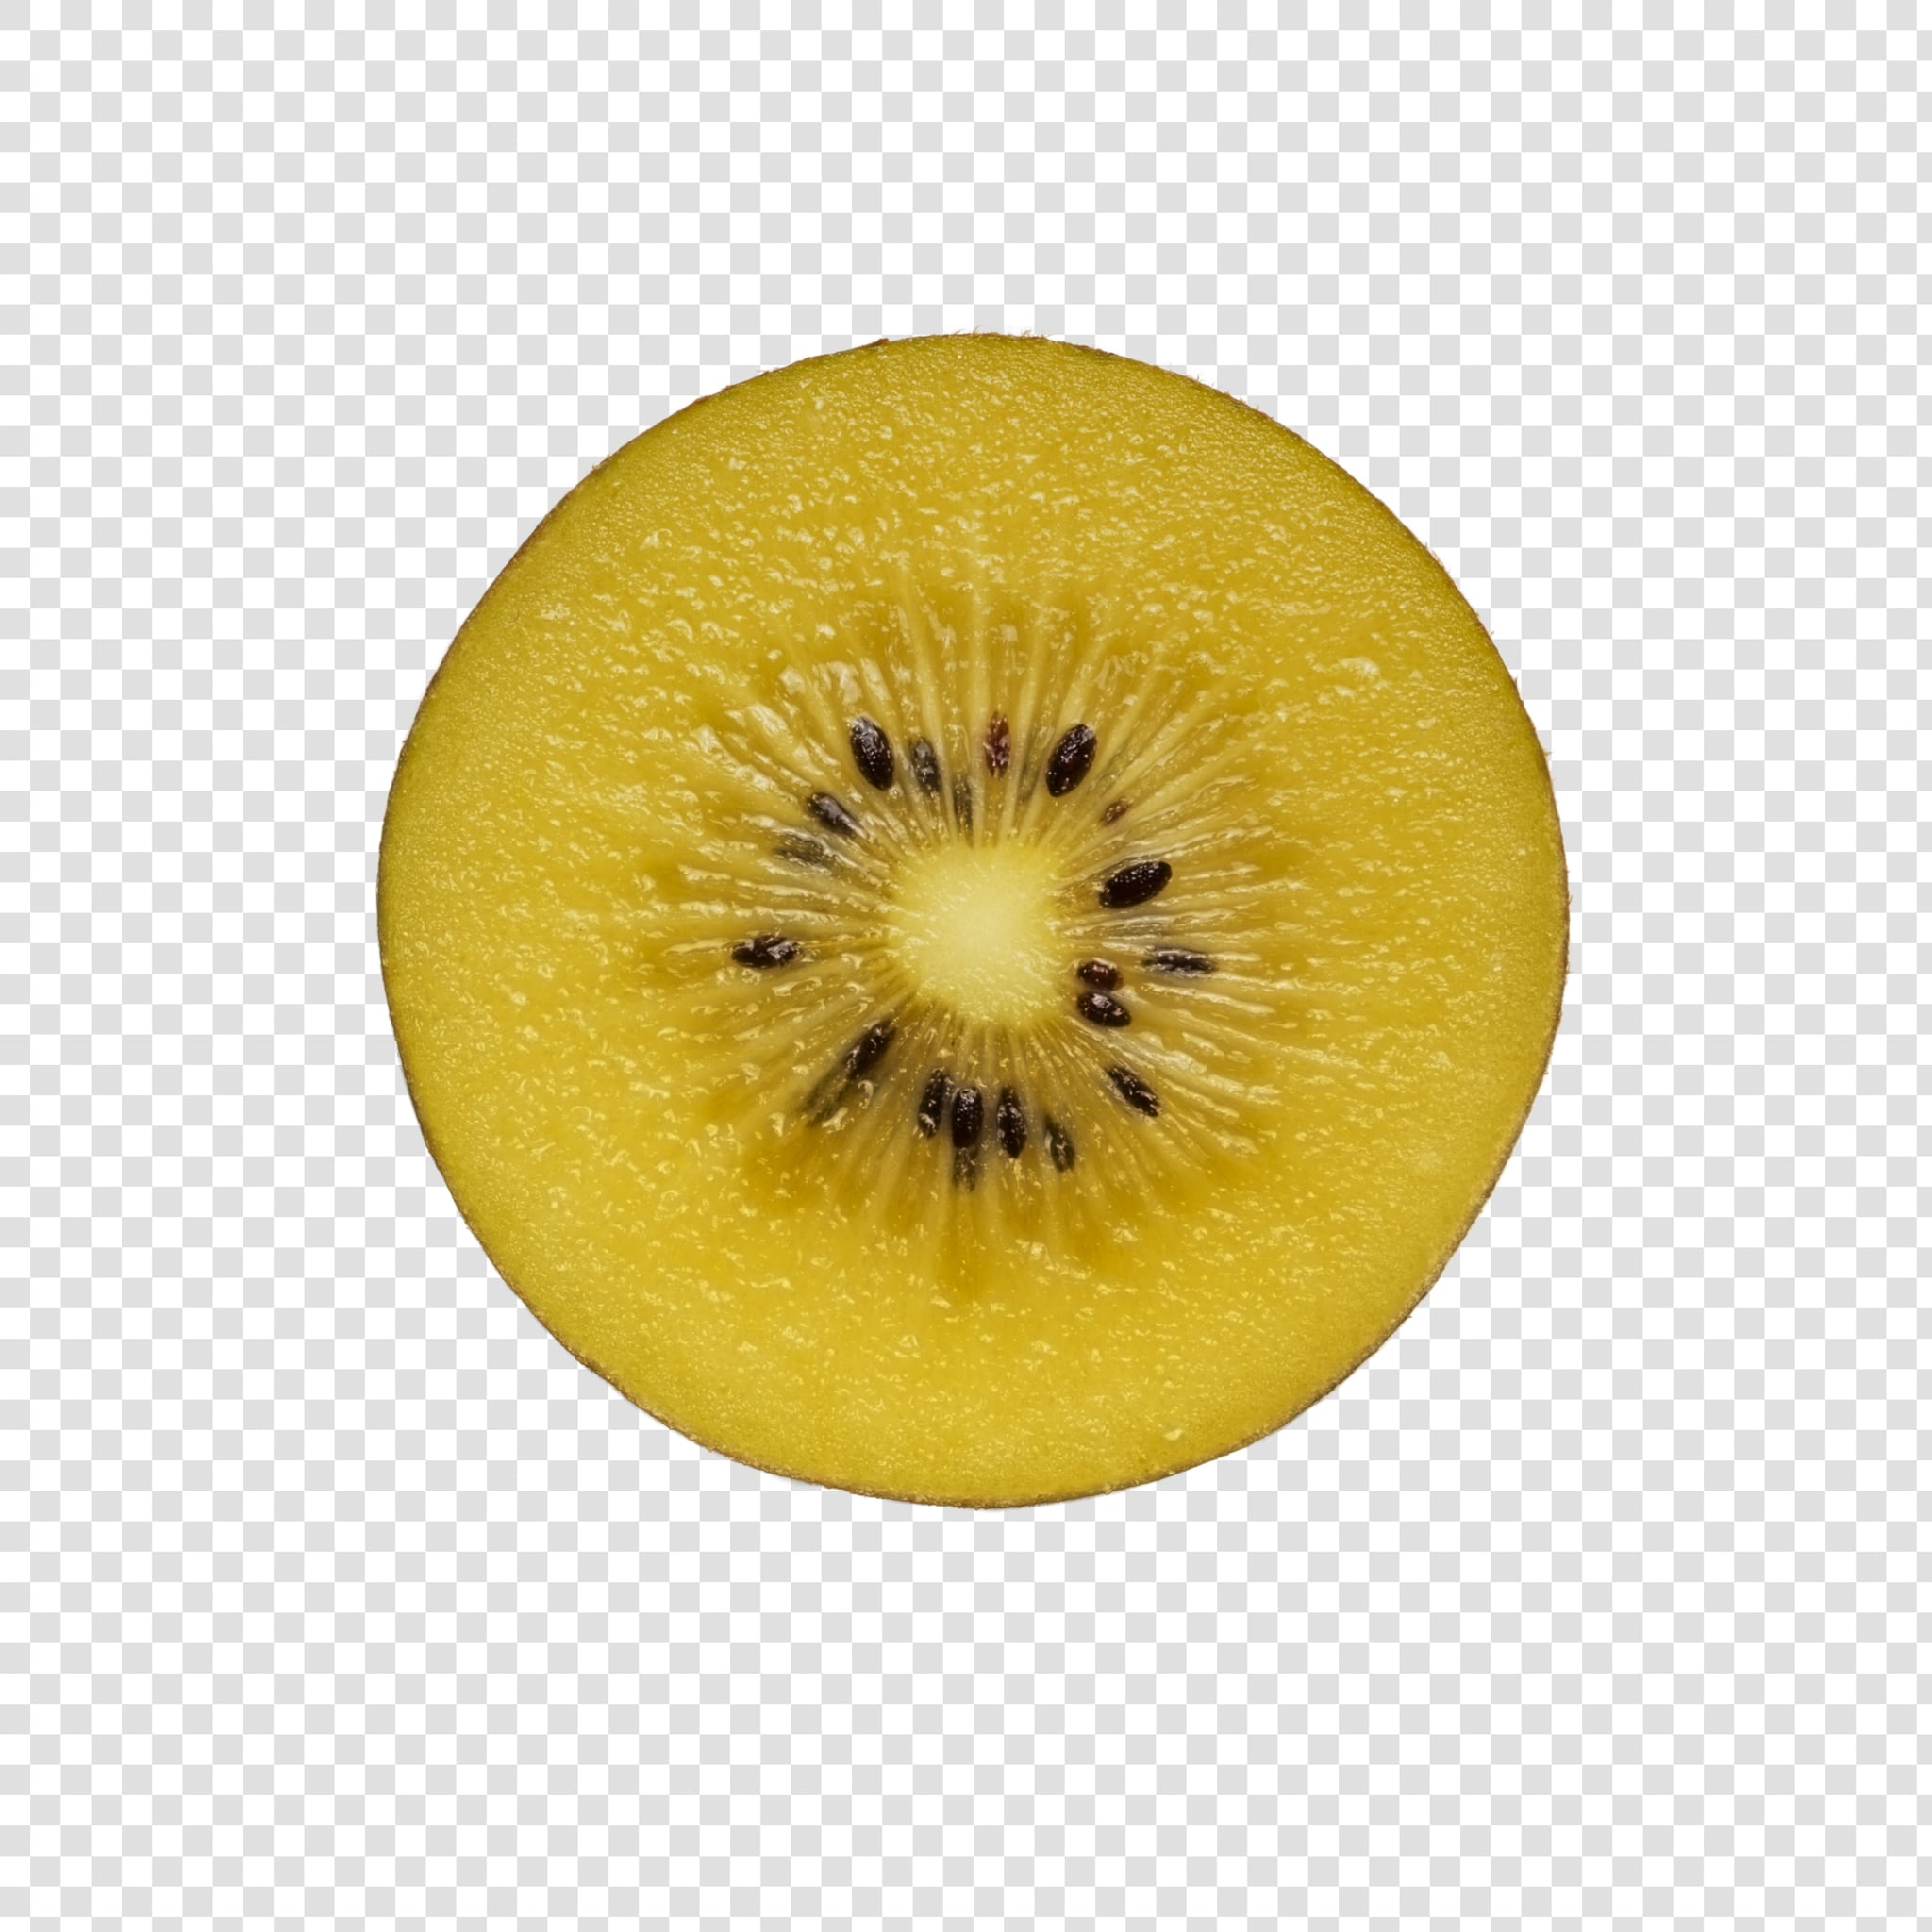 Kiwi PSD image with transparent background